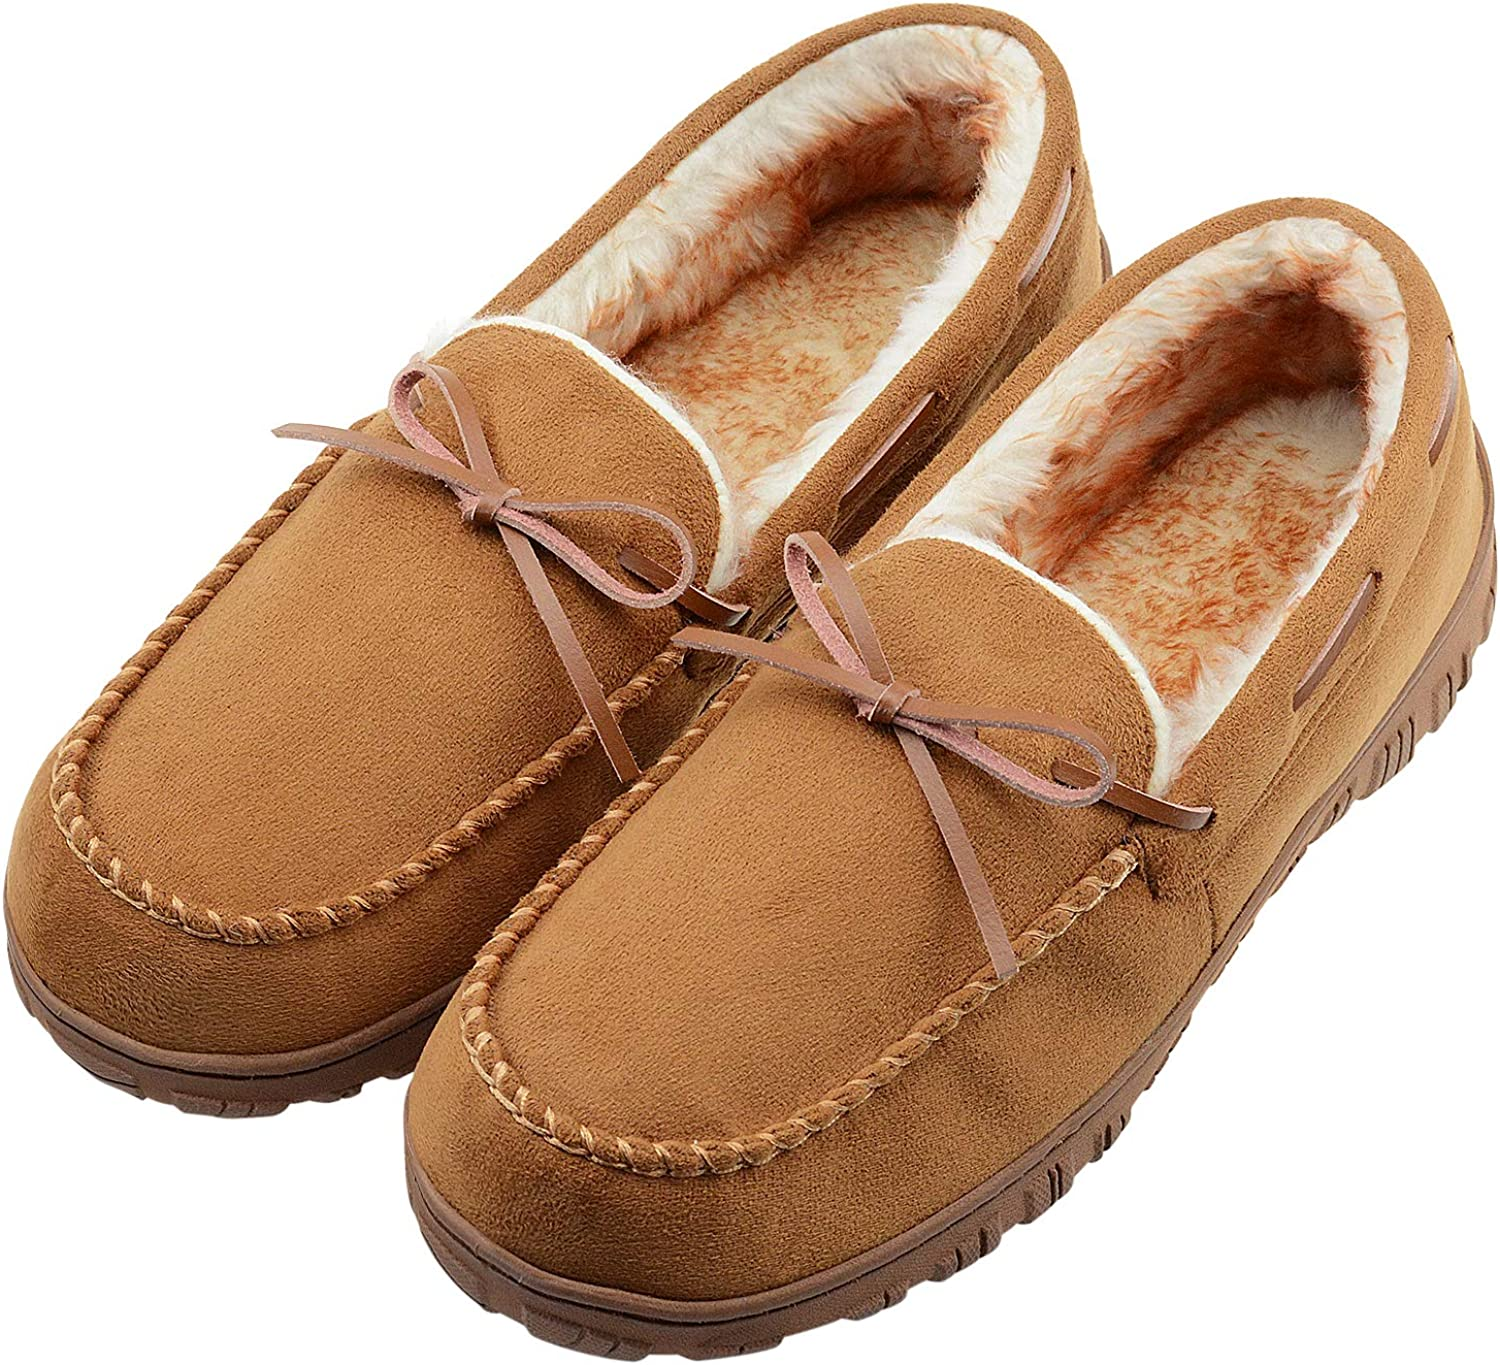 LseLom Mens-Slippers-Moccasin-Microsuede-Slip-on-Indoor-Outdoor